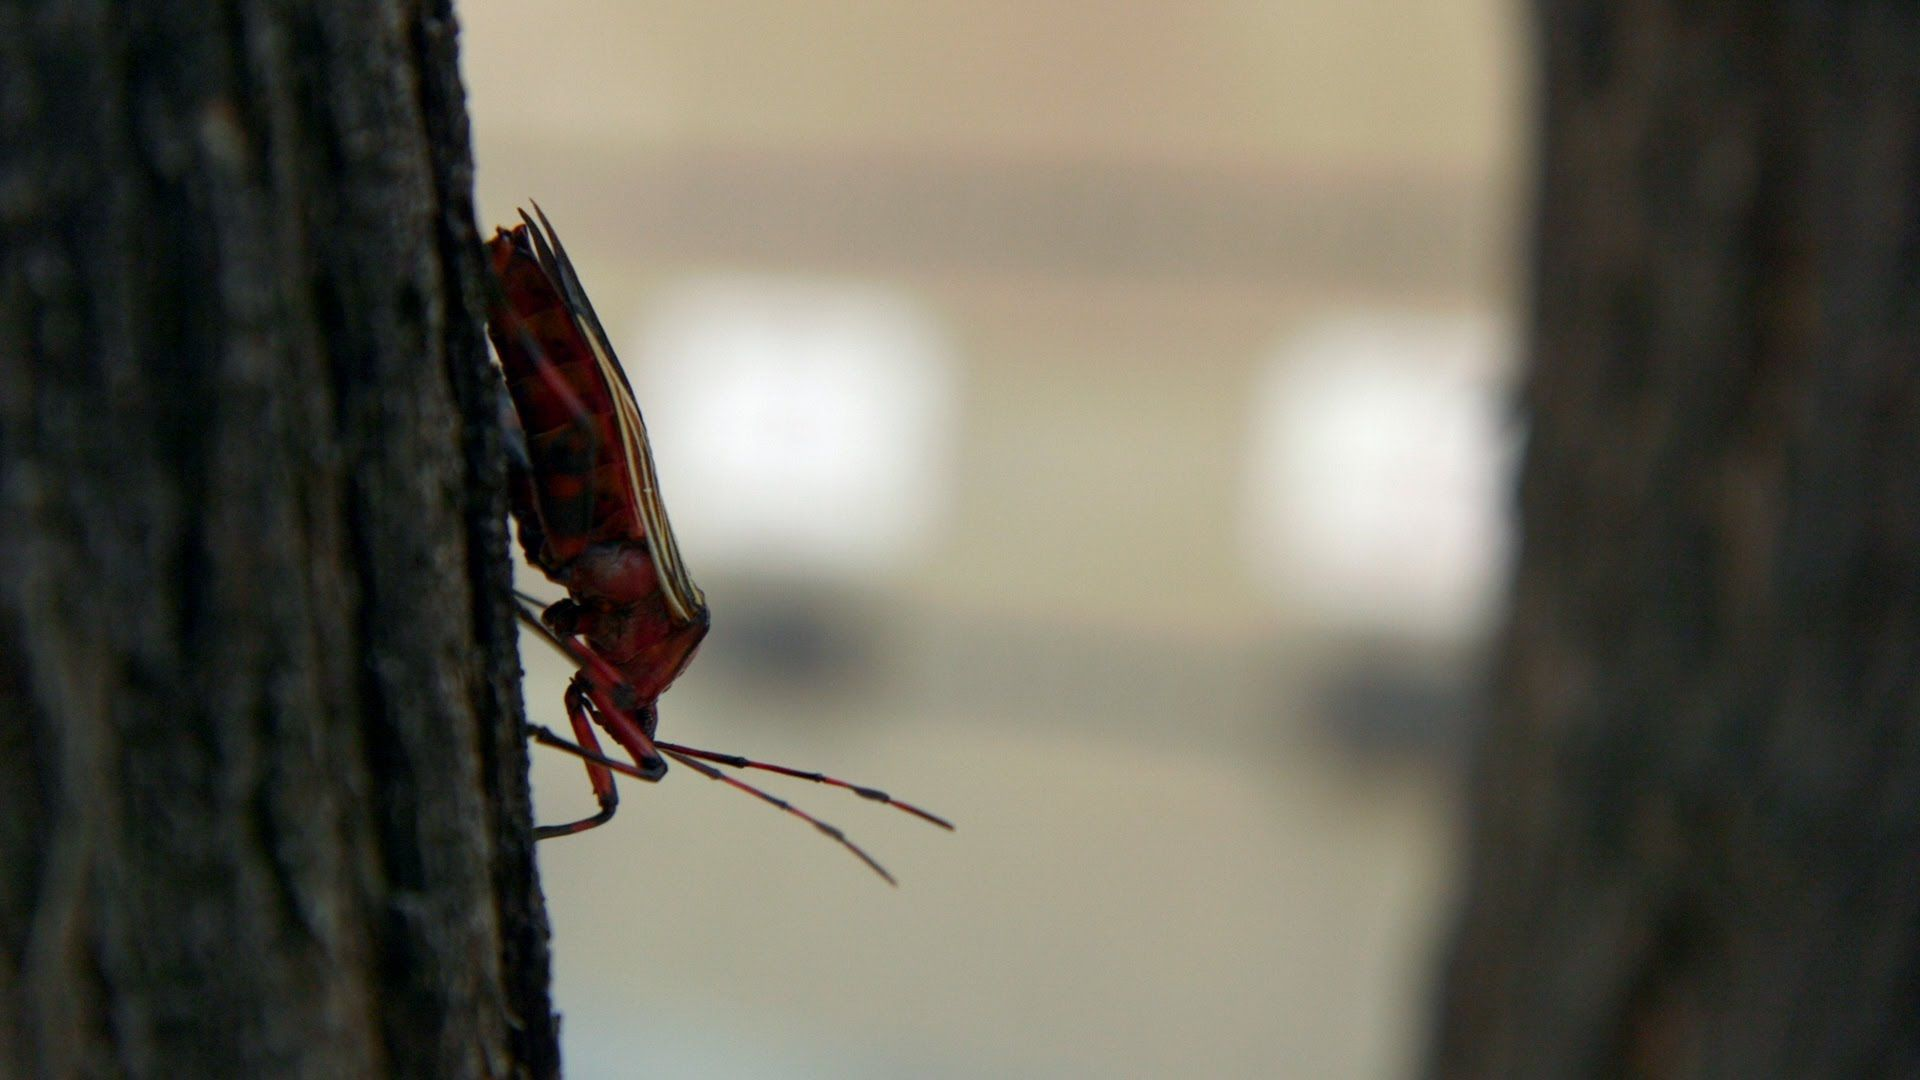 Hot weather brings Giant Mesquite Bugs down to earth